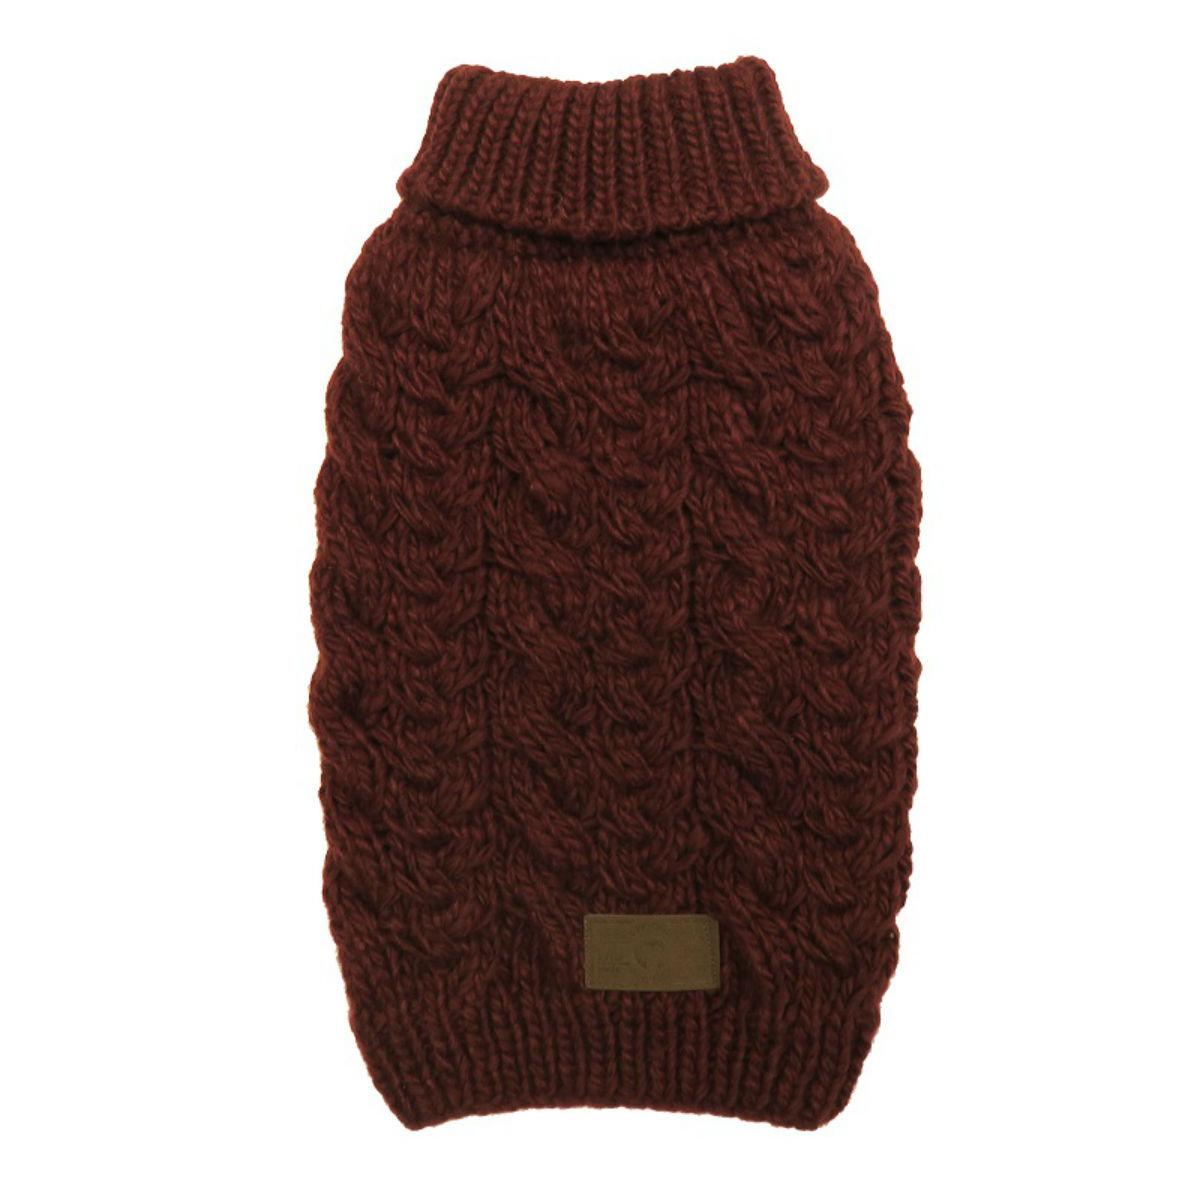 fabdog® Wool Turtleneck Dog Sweater - Burgundy